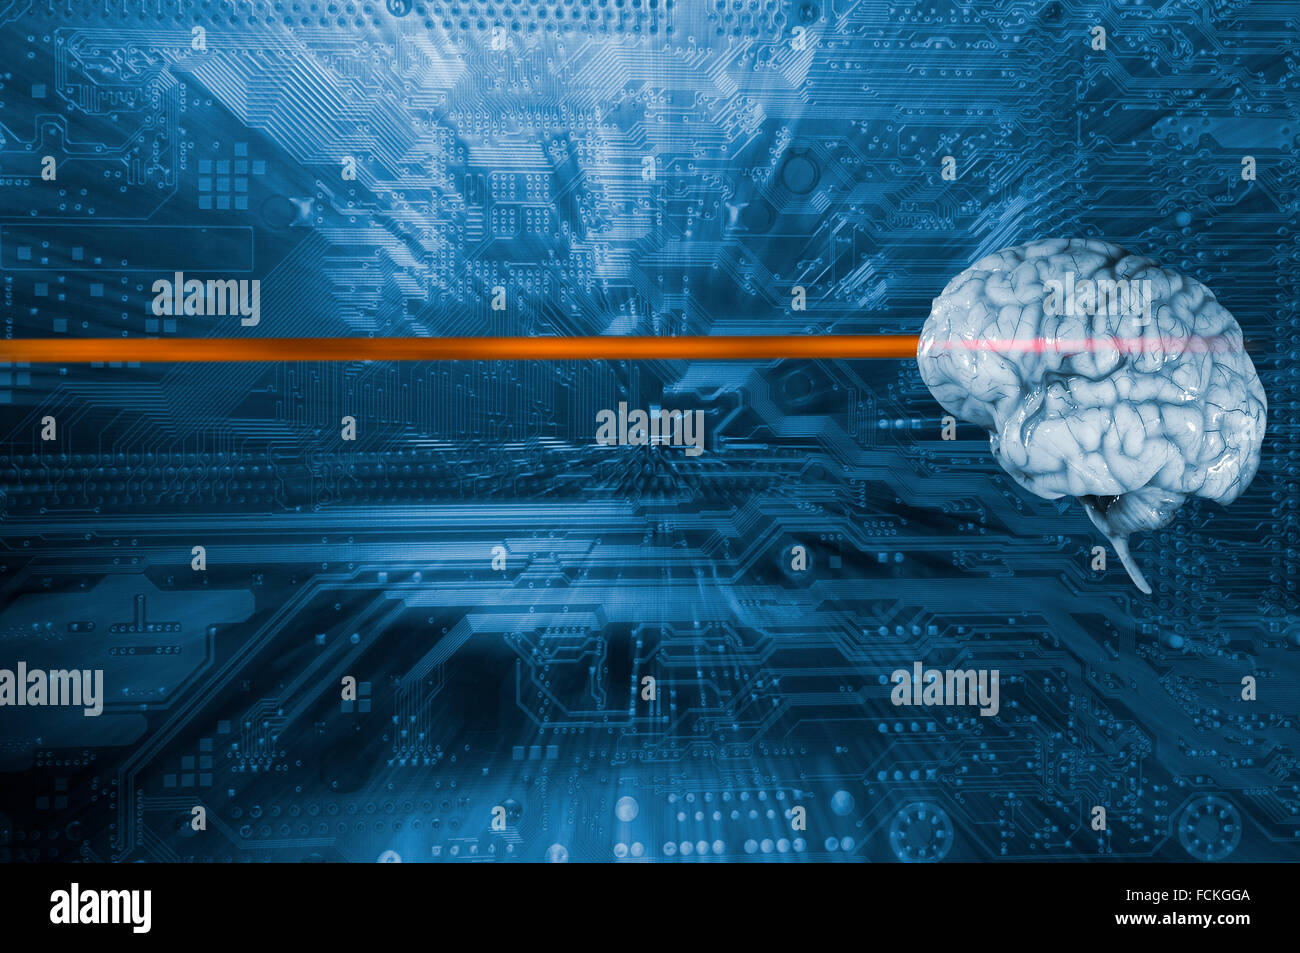 human brain and computer circuitboard, artificial intelligence - Stock Image